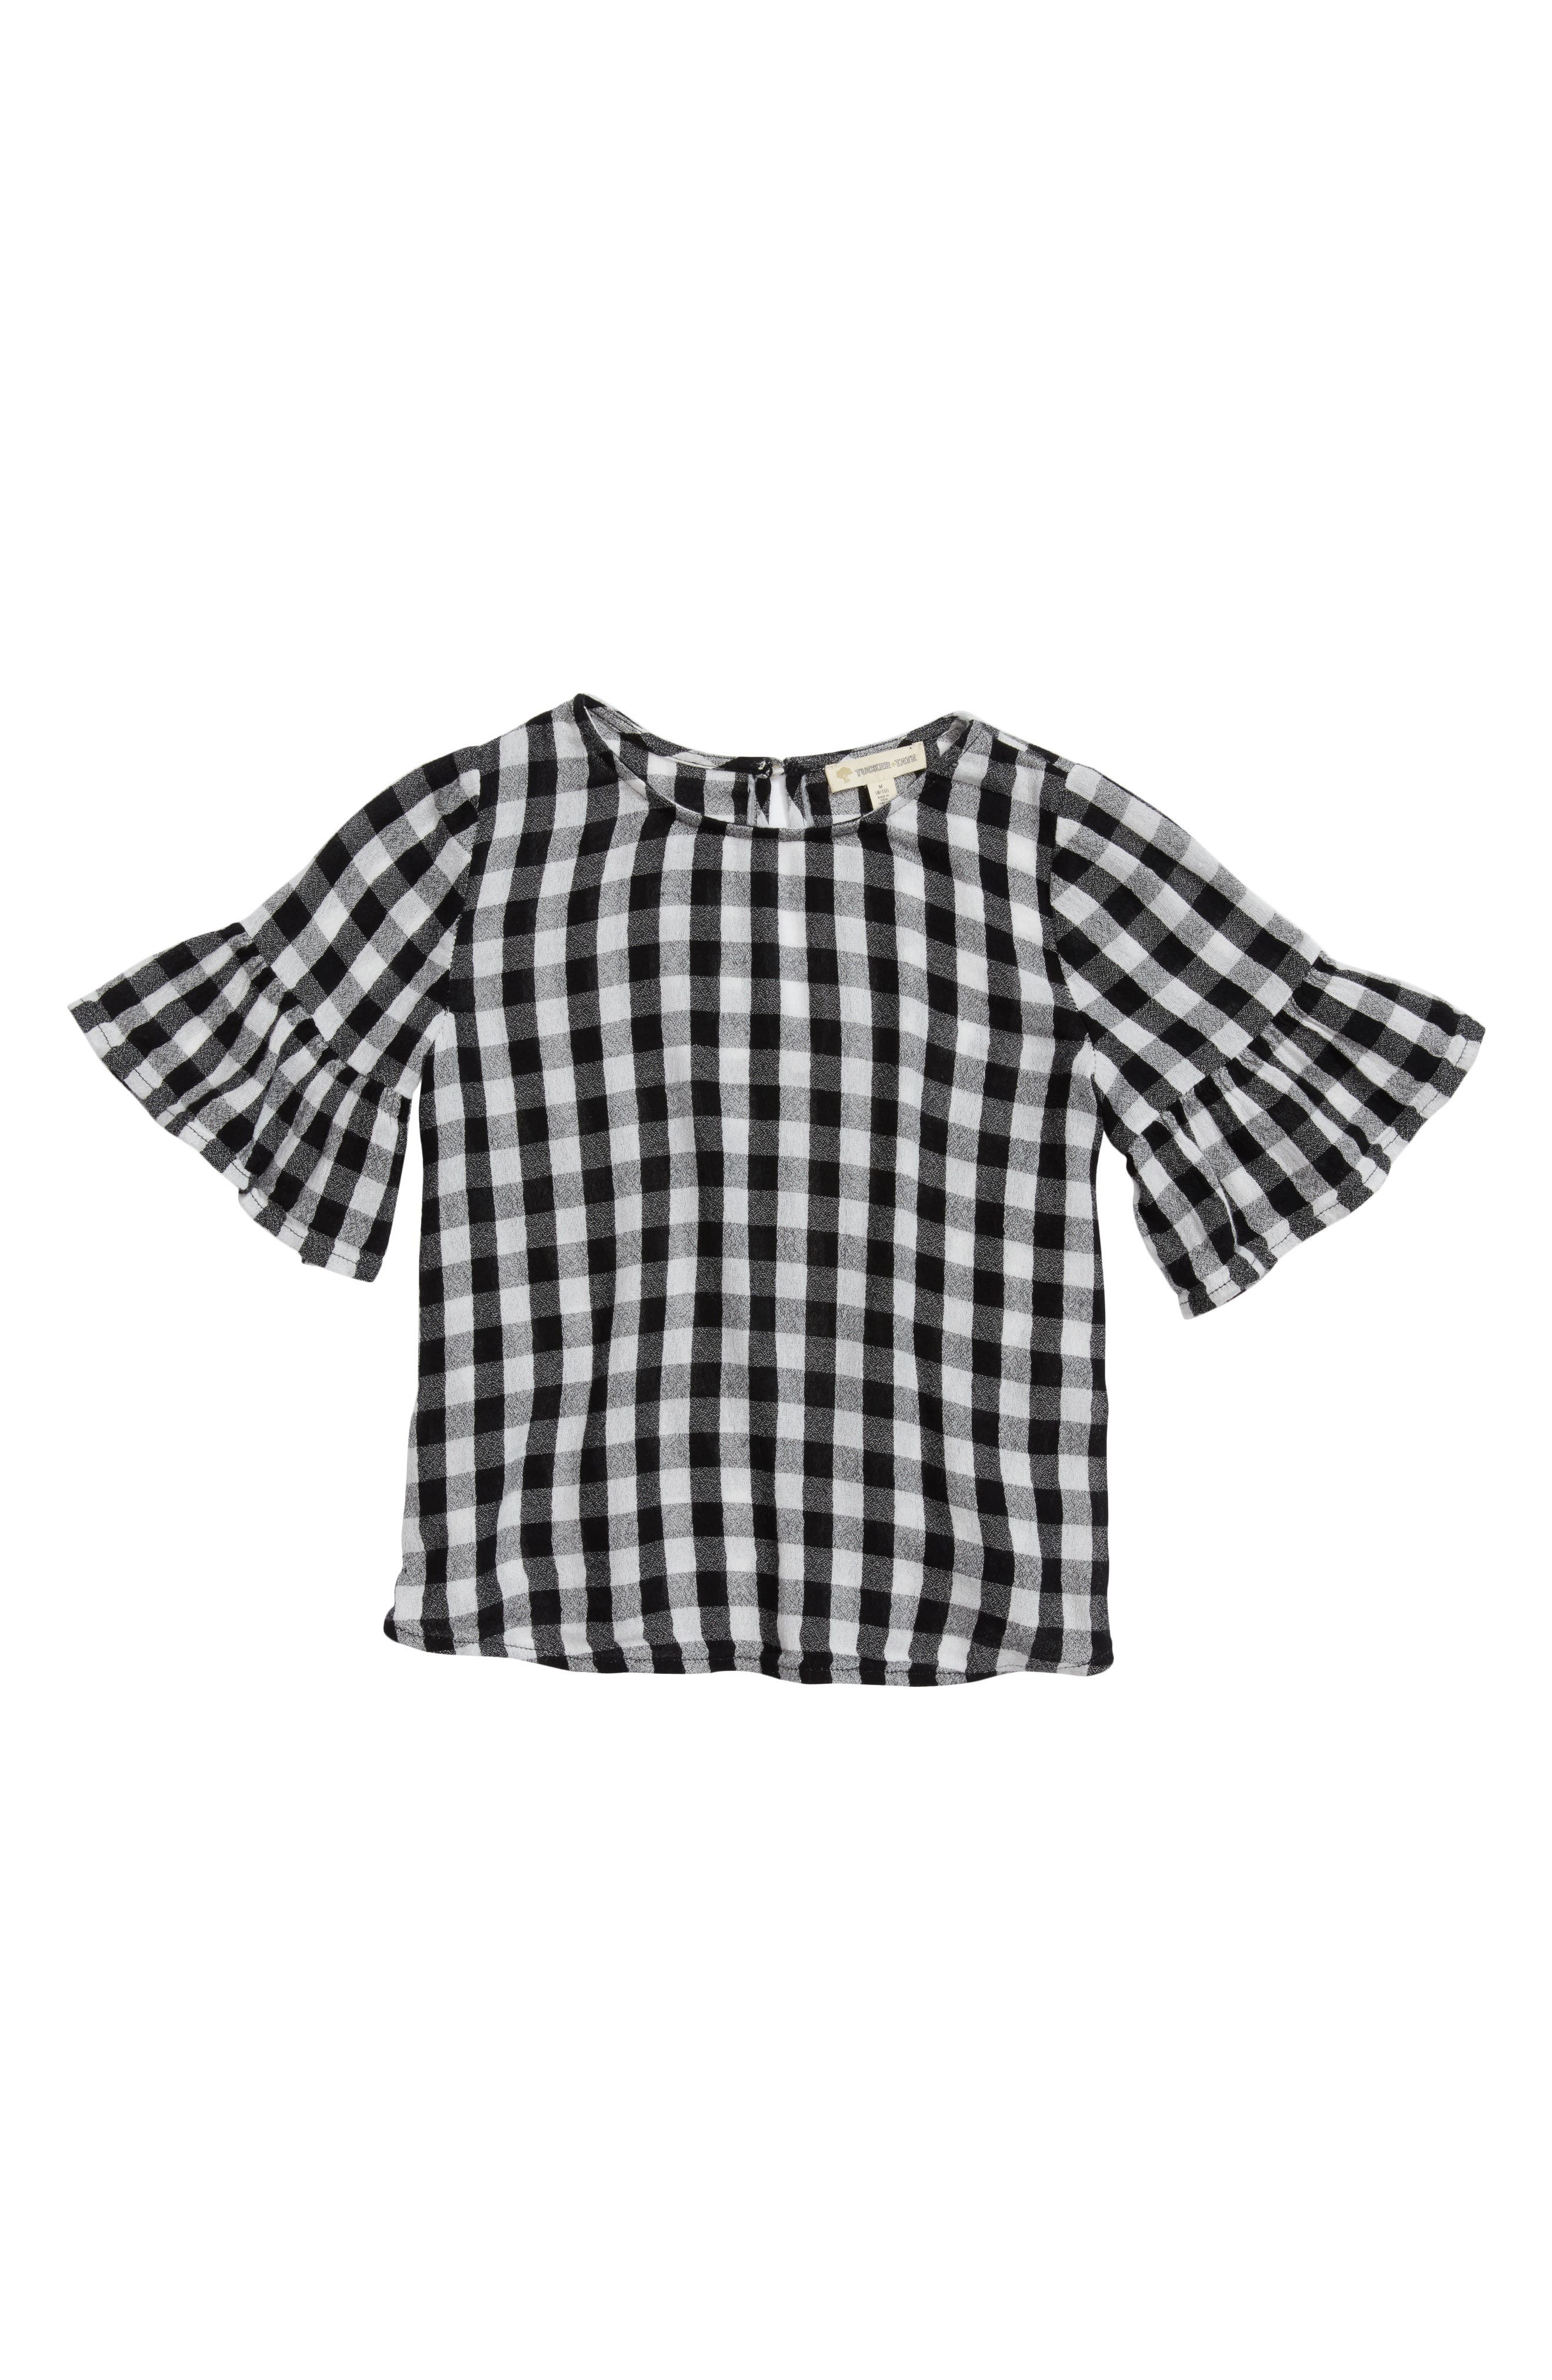 Bell Sleeve Top,                             Main thumbnail 1, color,                             Black- White Gingham